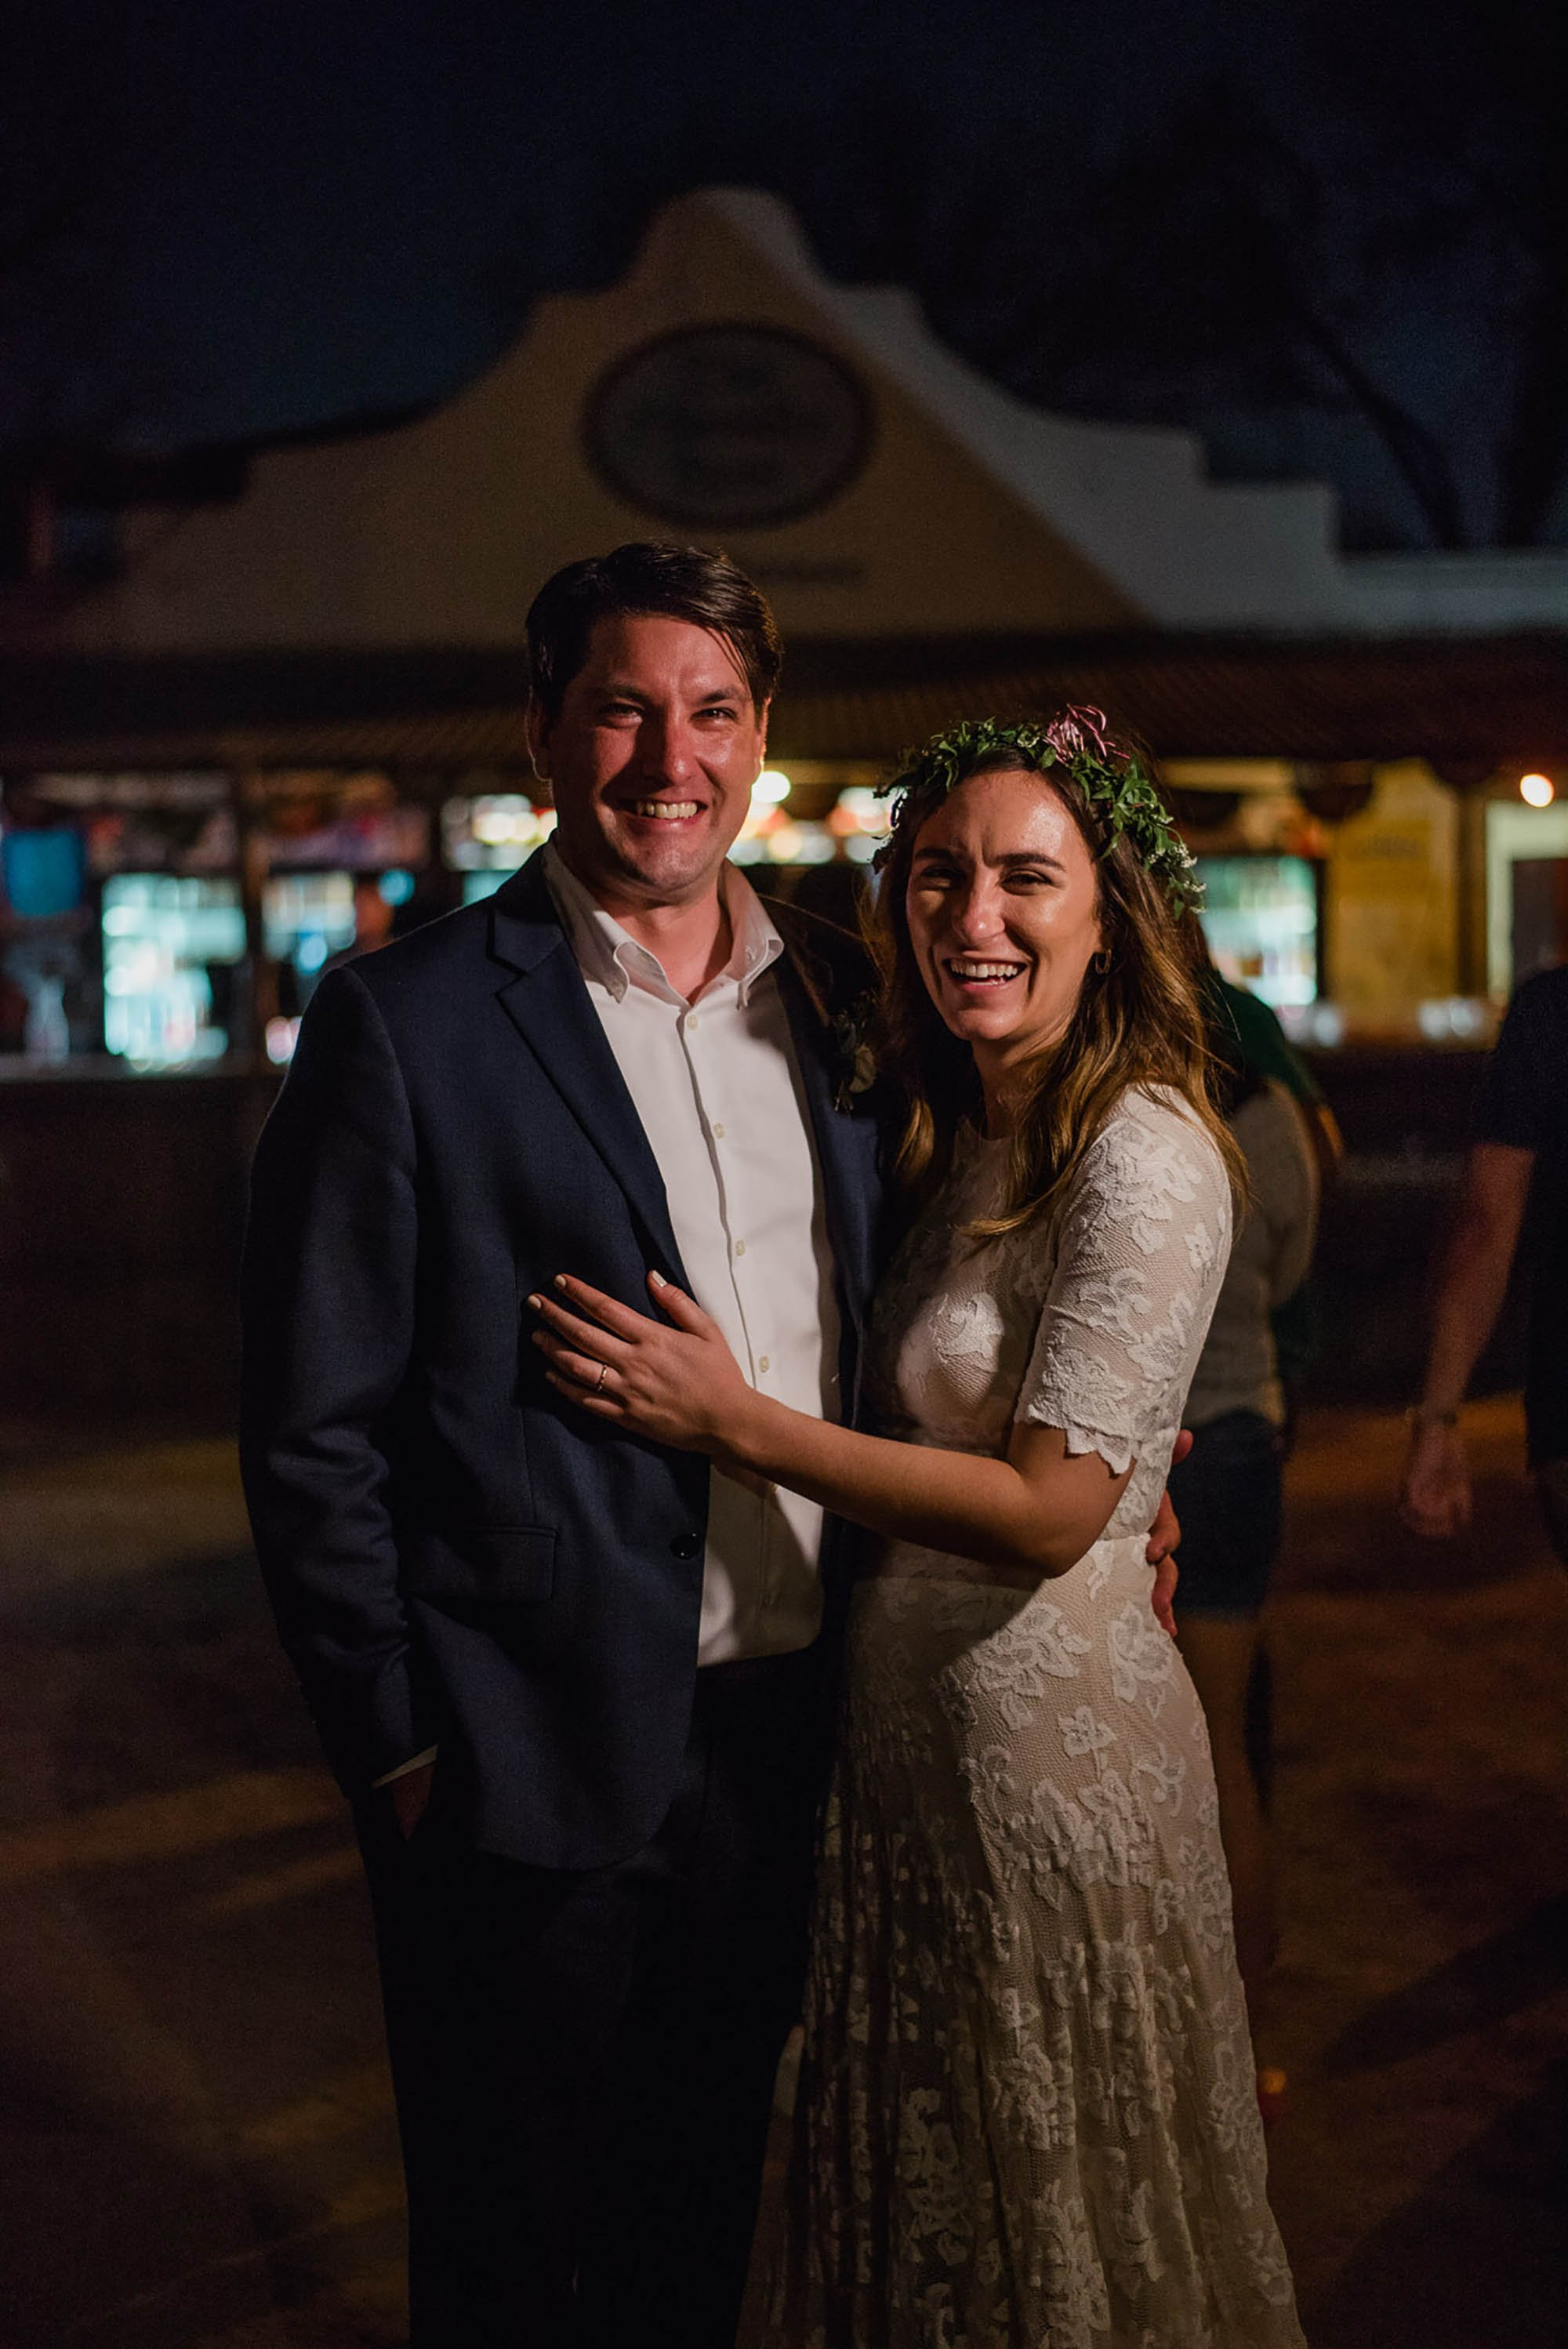 nighttime wedding portrait at a bar, the friendly spot san antonio, wedding photography for alternative couples in san antonio, laid back san antonio wedding photographs